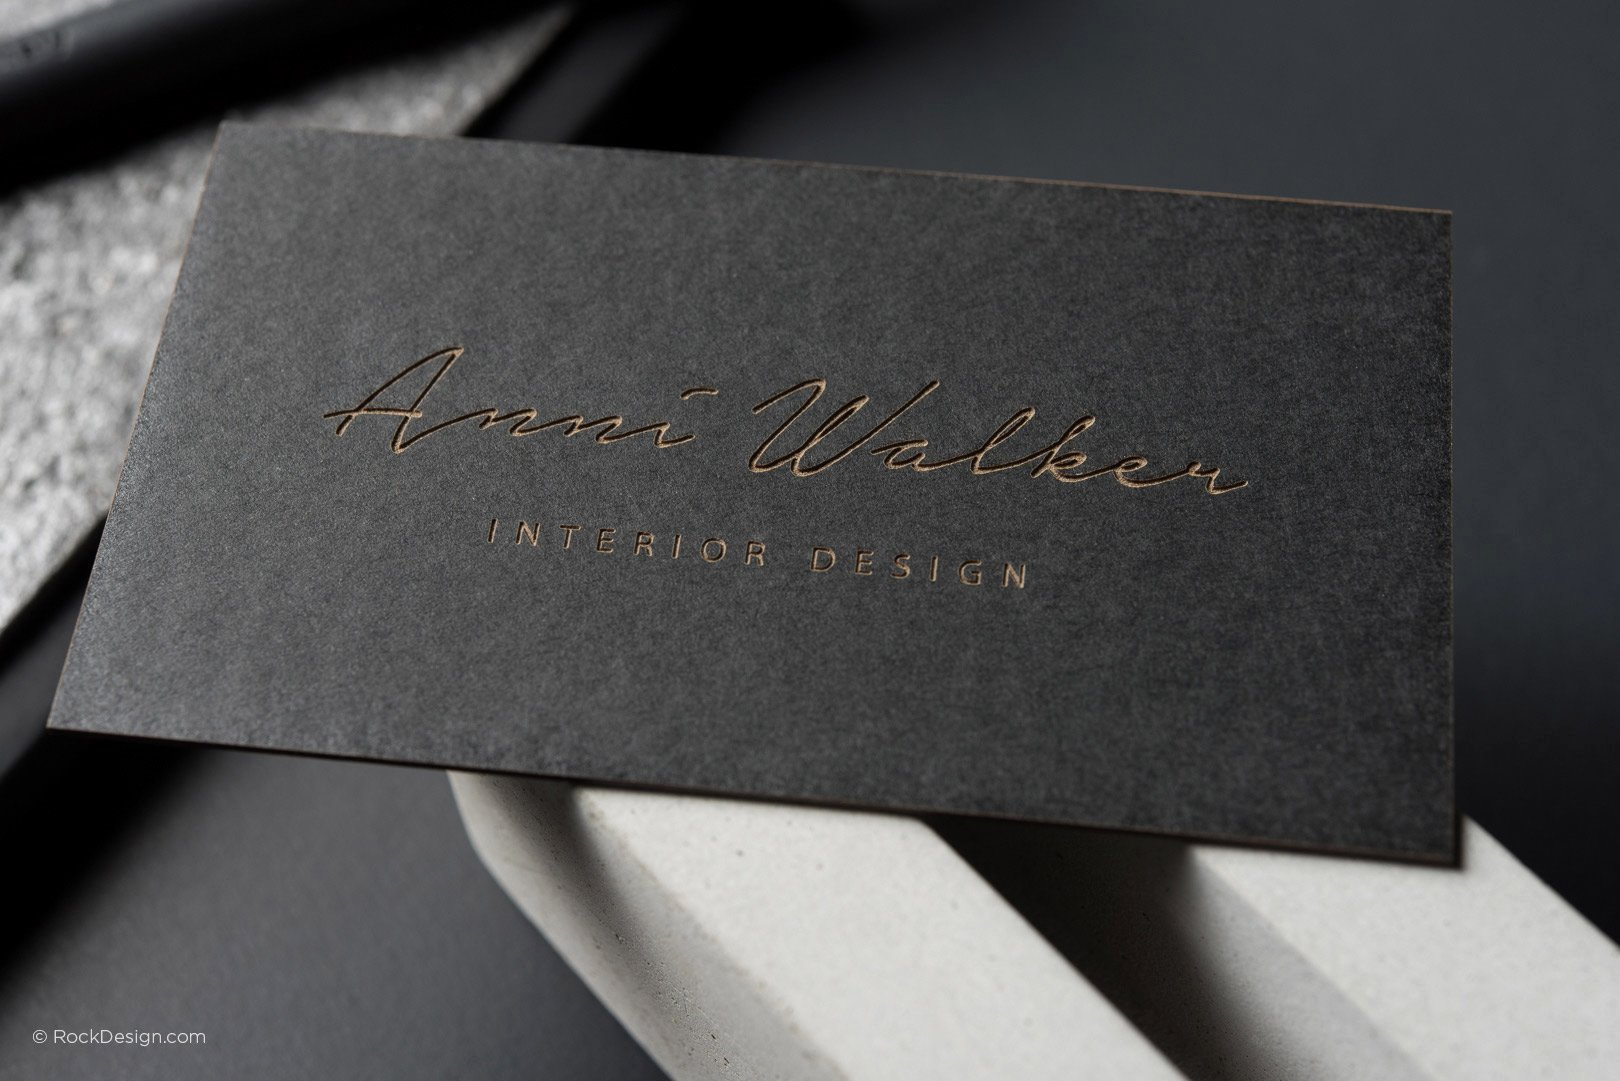 Interior Design Business Card New order Interior Design Business Cards